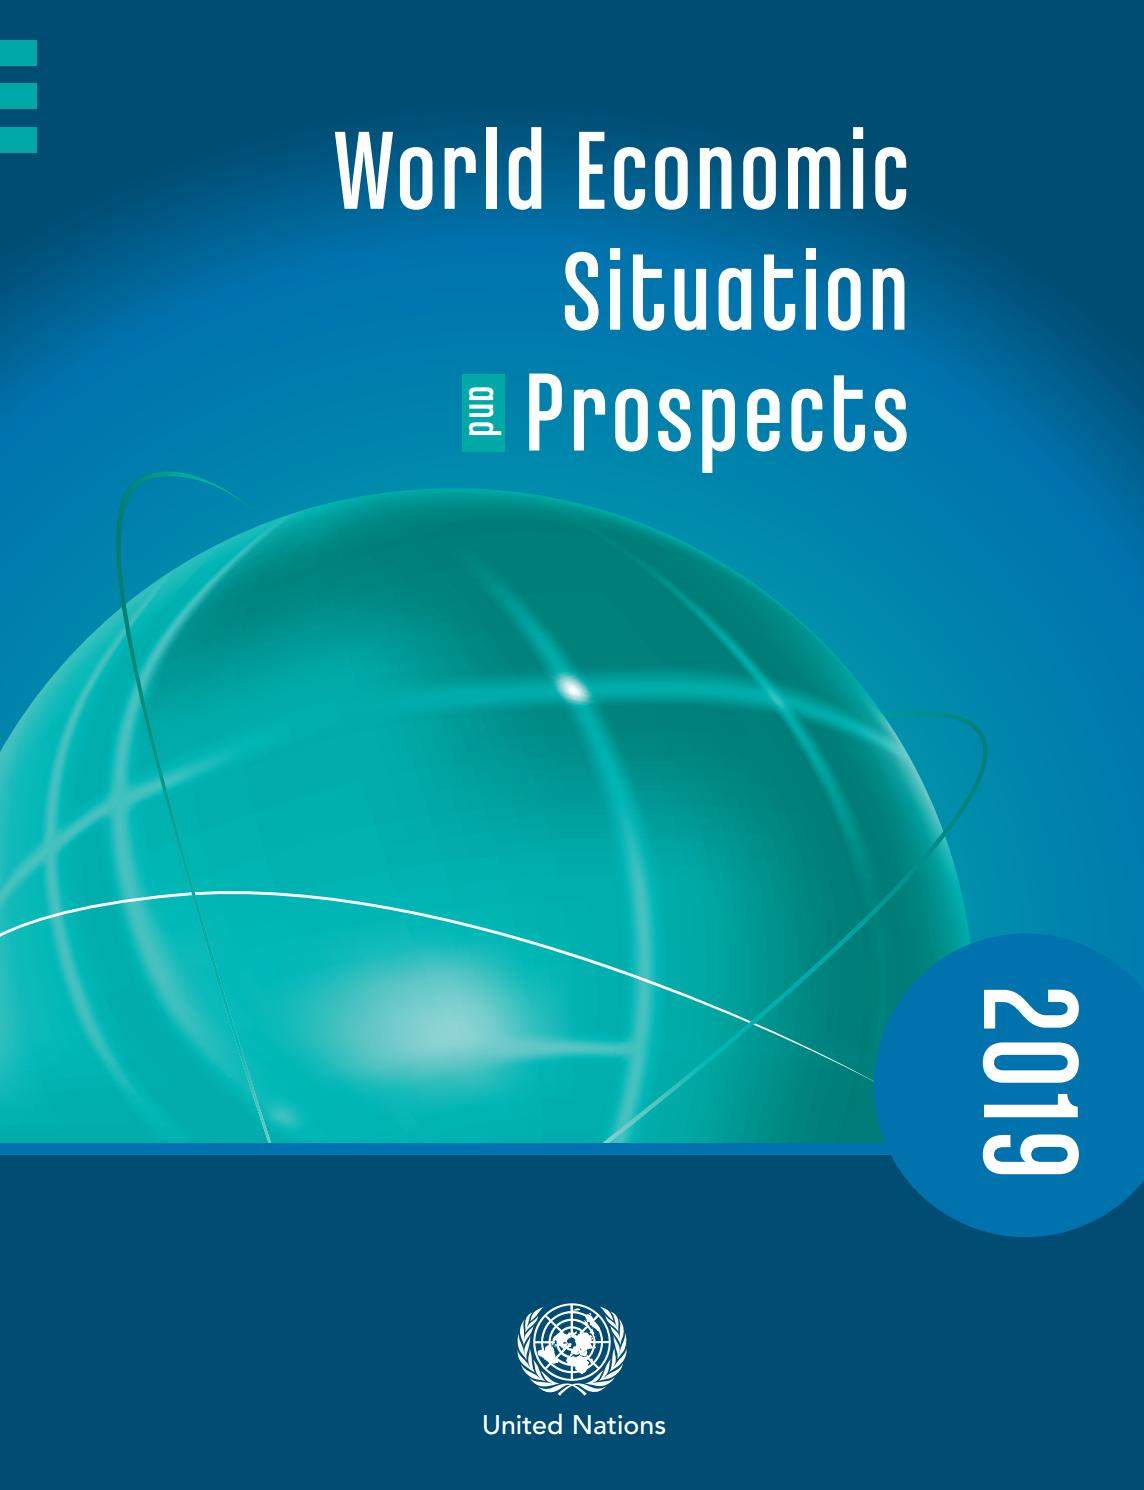 World Economic Situation and Prospects 2019 by United